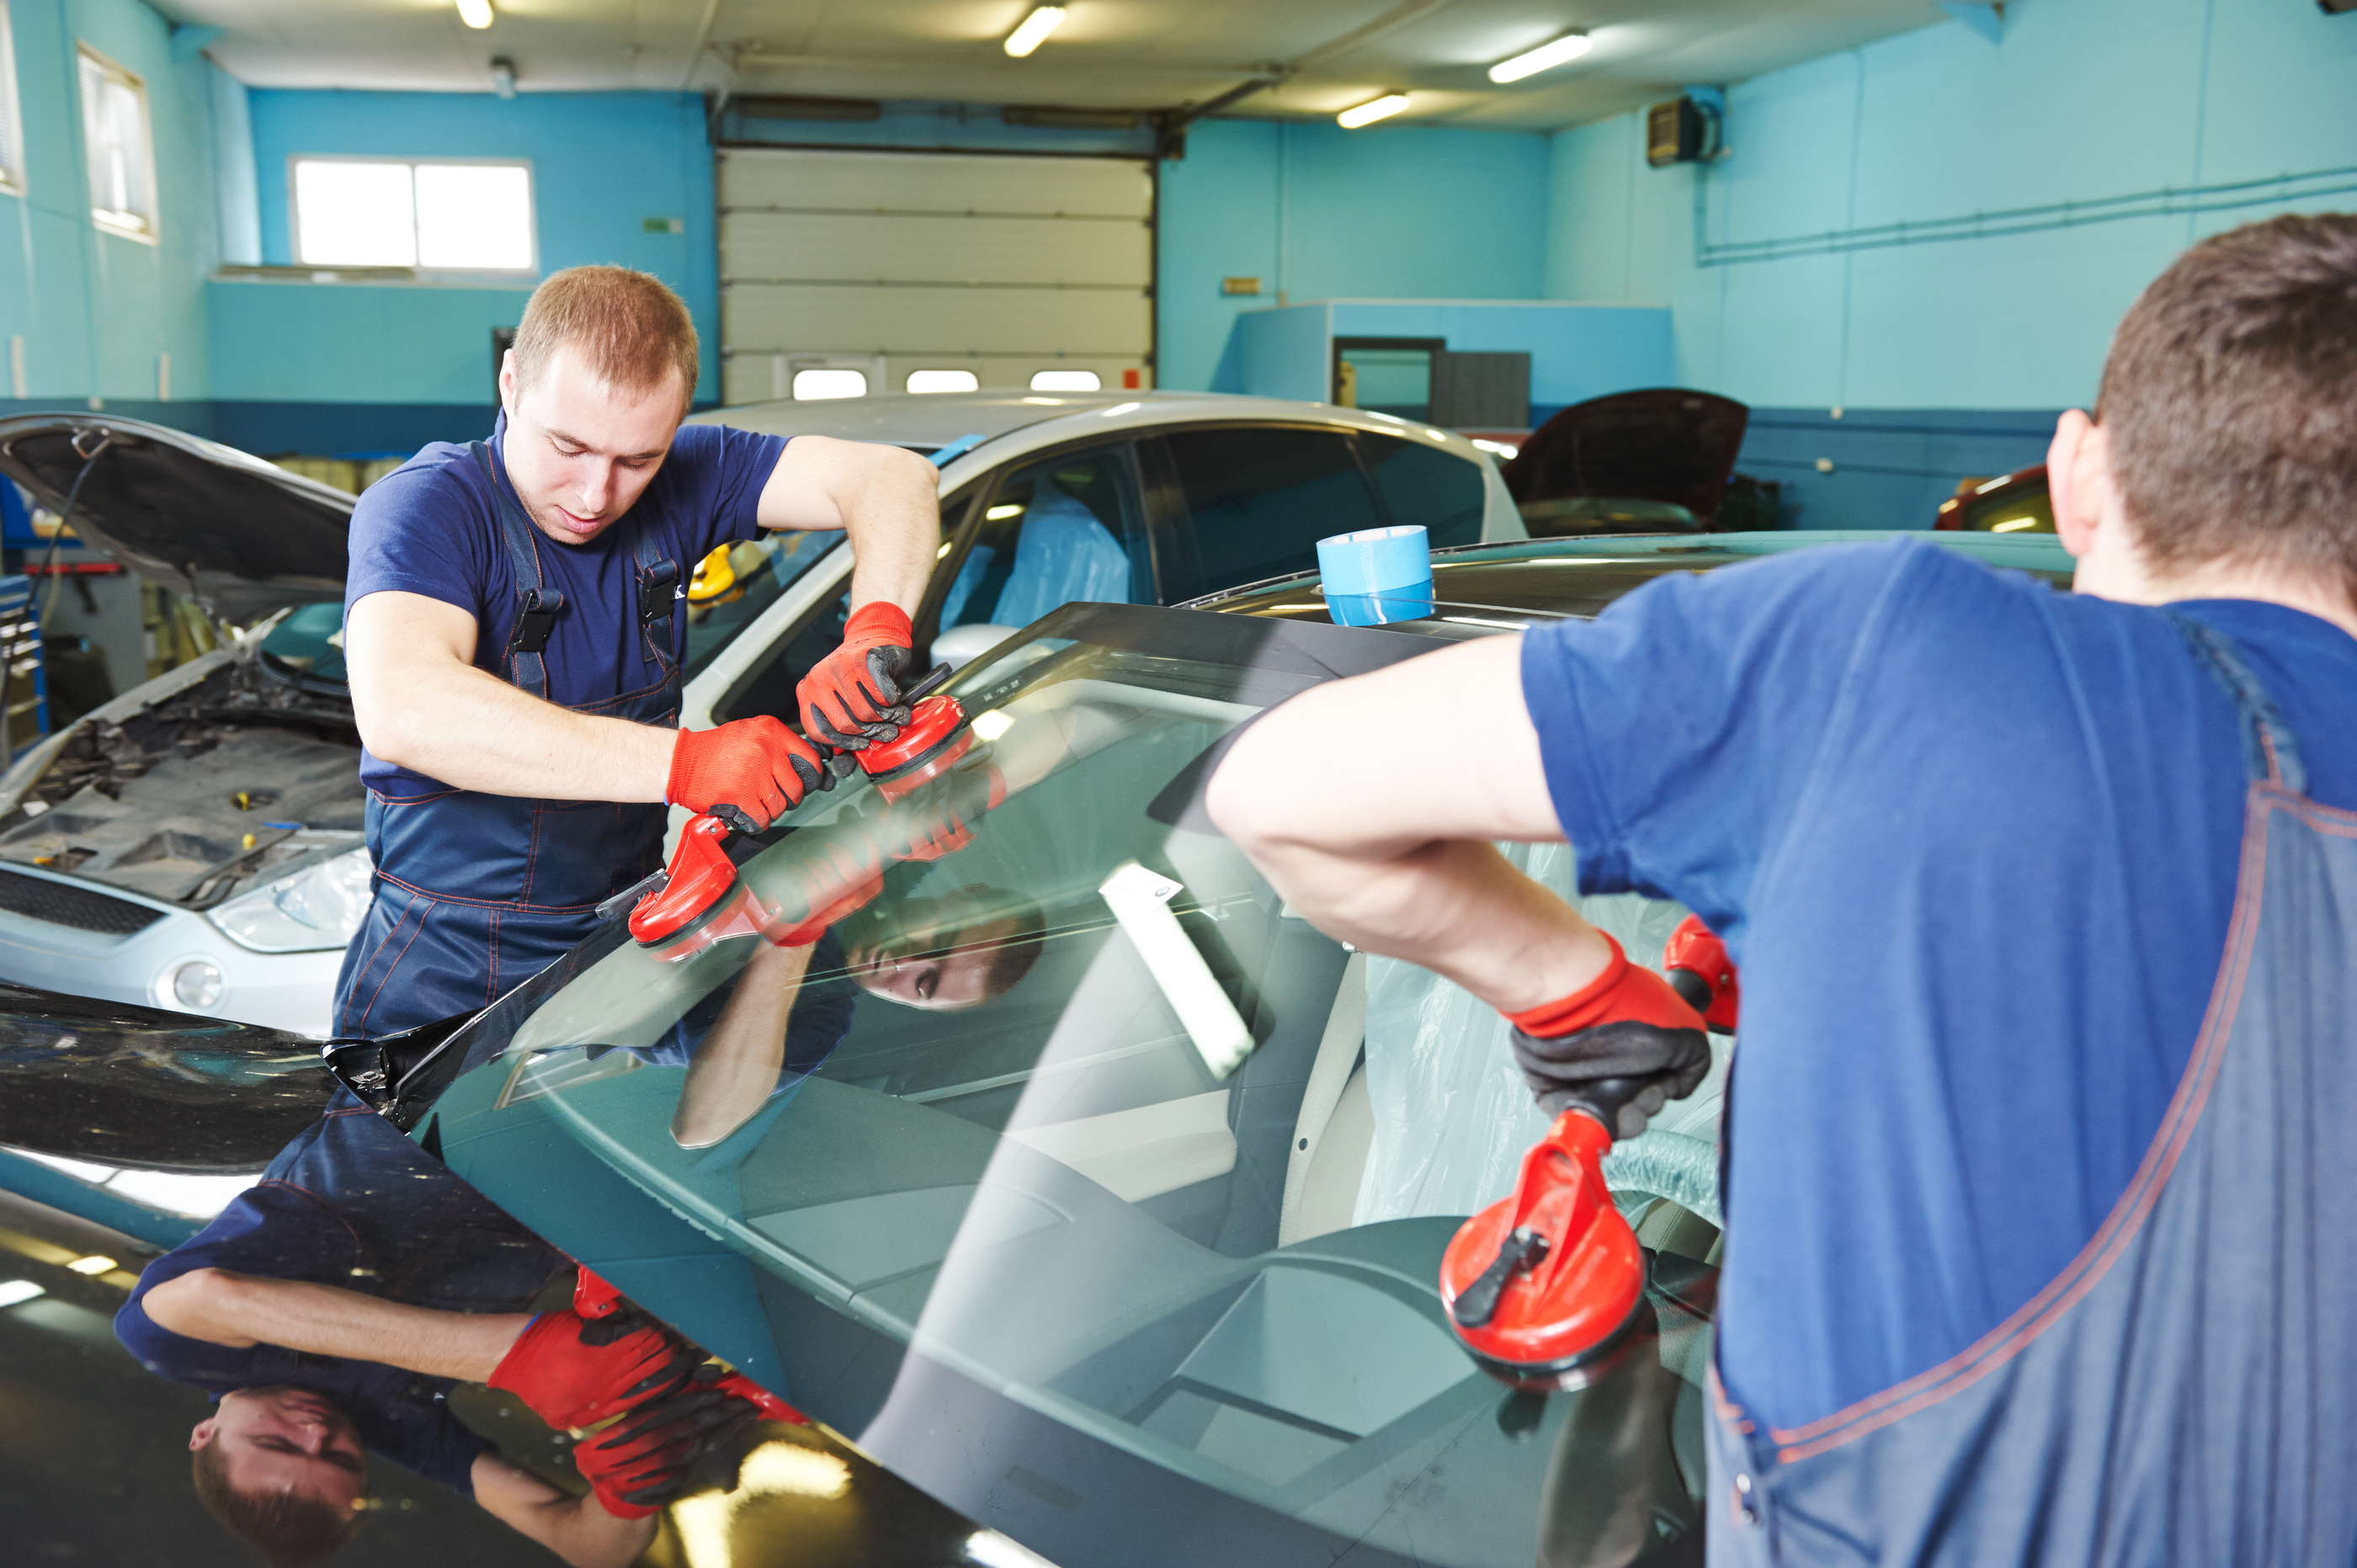 Automobile glazier adding glue on windscreen or windshield of a car in auto service station garage b